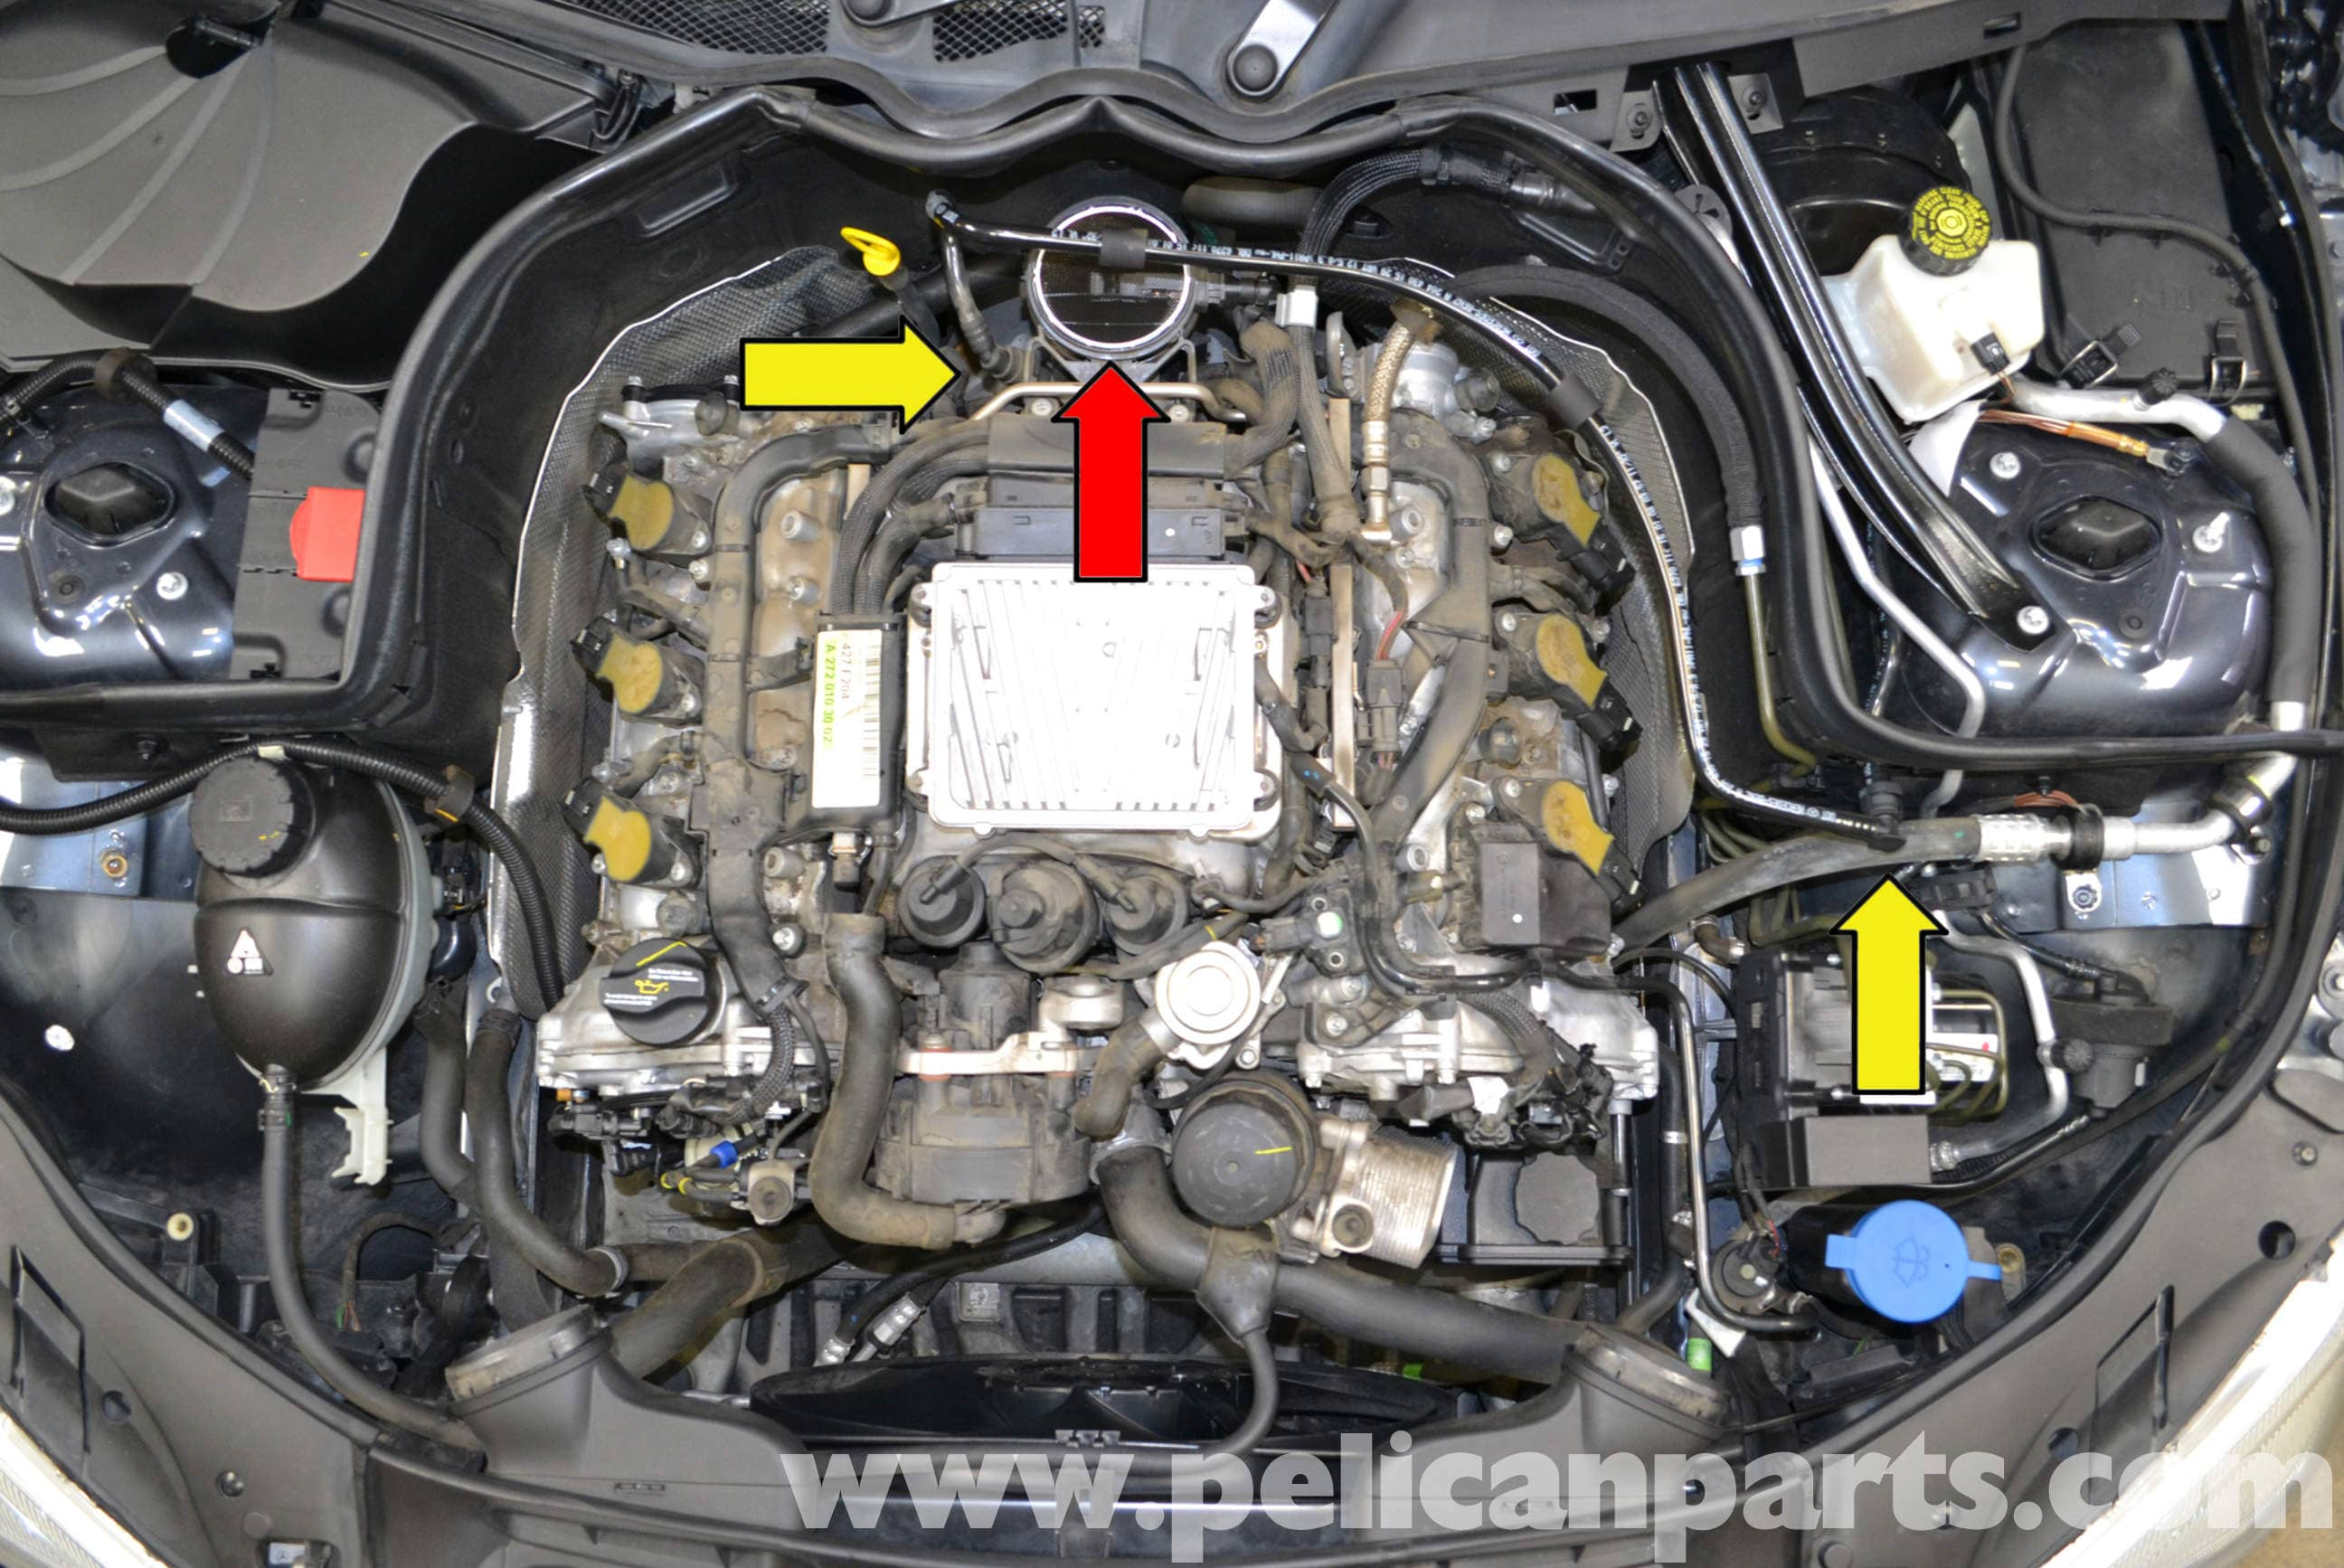 Throttle Body Heater Facias Saab 93 Wiring Diagram Mercedes Crankshaft Position Sensor Location Benz W204 Positioning